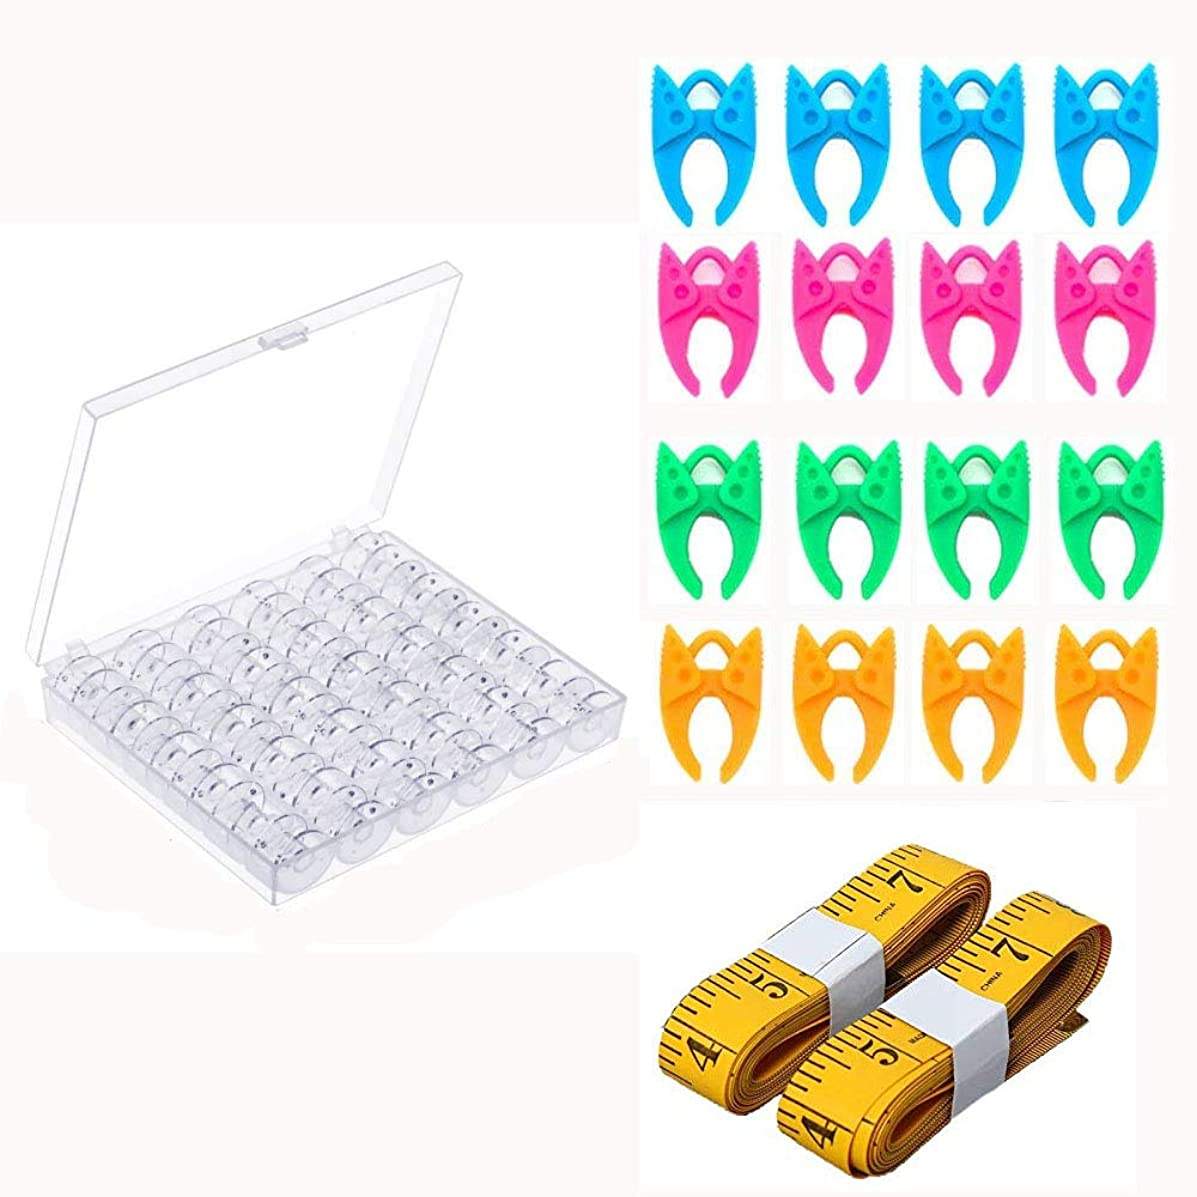 Ohaha 36 Pcs Plastic Sewing Machine Bobbins with Case and Measuring Tape, Bobbin Clamps for Brother Singer Babylock Janome Kenmore